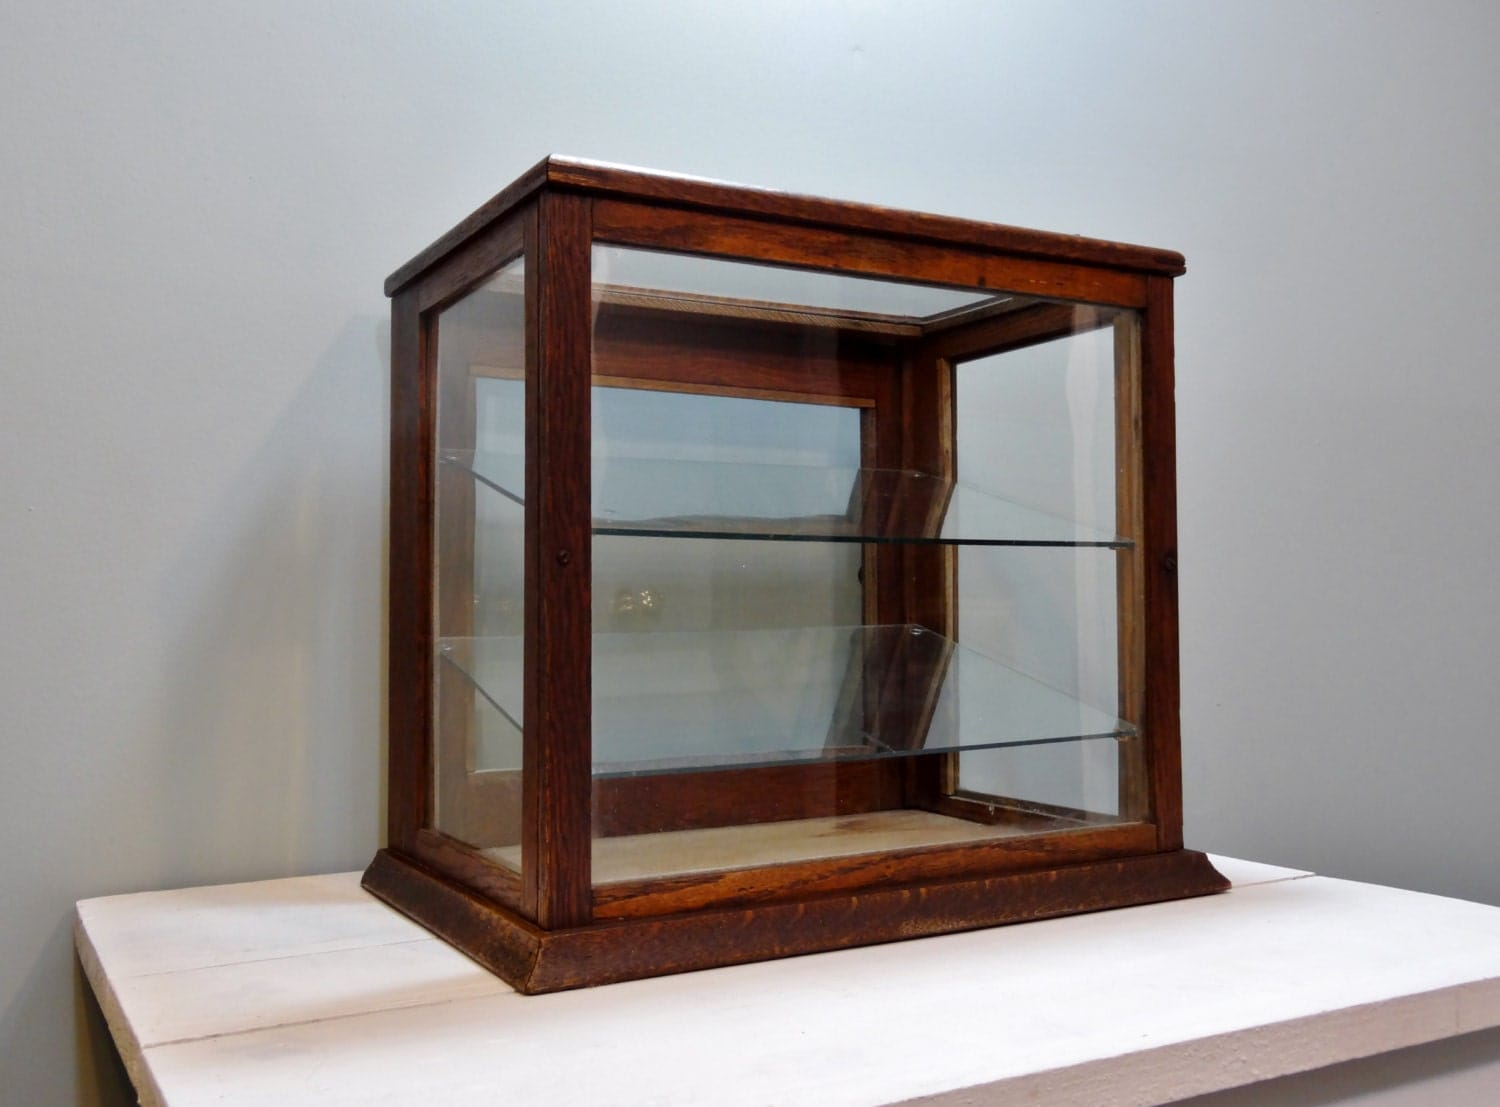 #653B25 Antique Wood General Store Glass Display Case By NewfoundFinds with 1500x1107 px of Brand New Glass Display Cabinets York 11071500 pic @ avoidforclosure.info